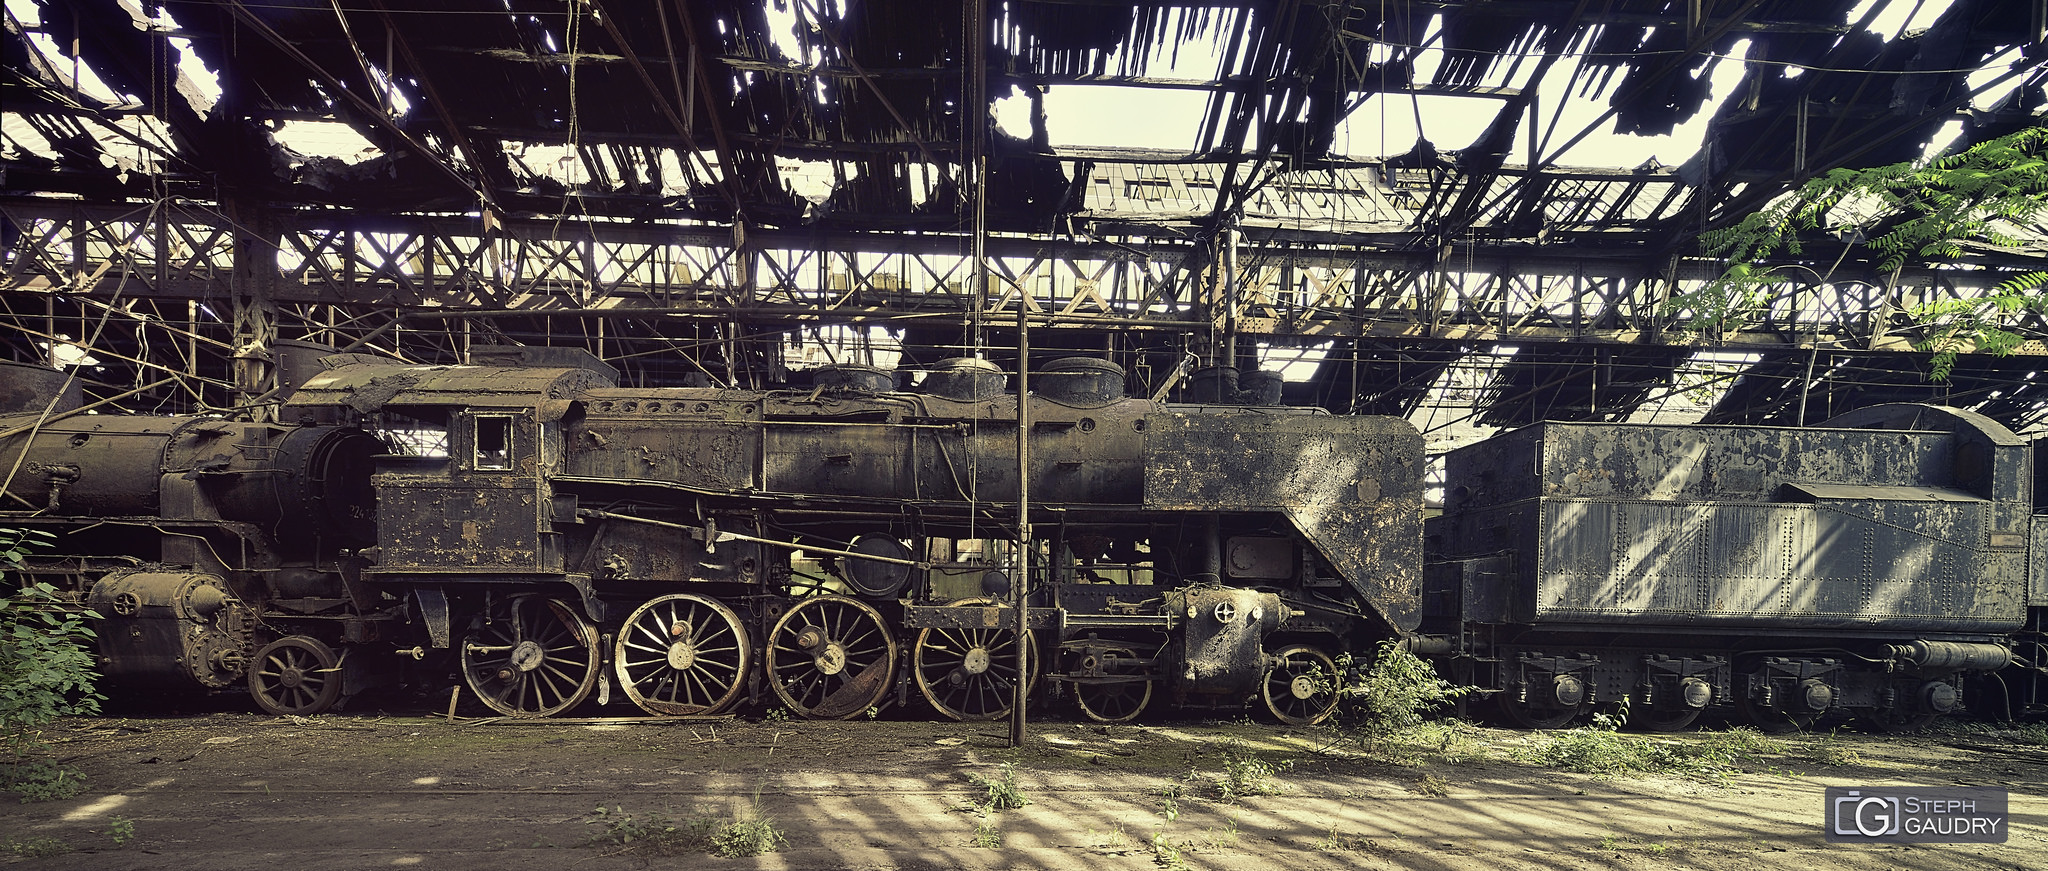 Abandoned steam train [Klik om de diavoorstelling te starten]